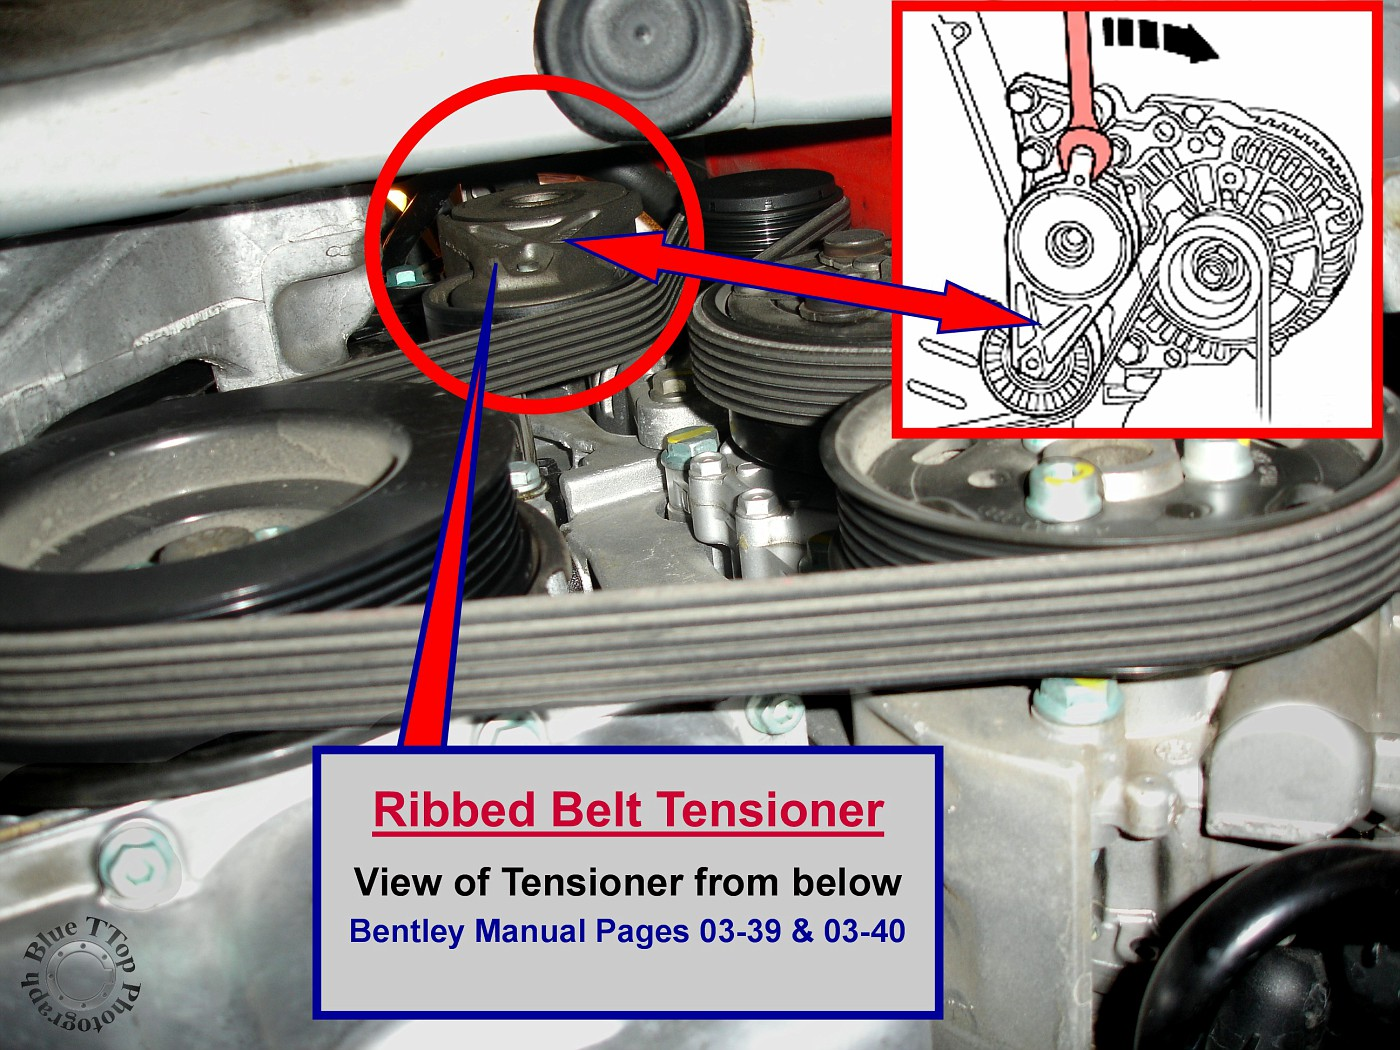 The Tensioner can be seen from